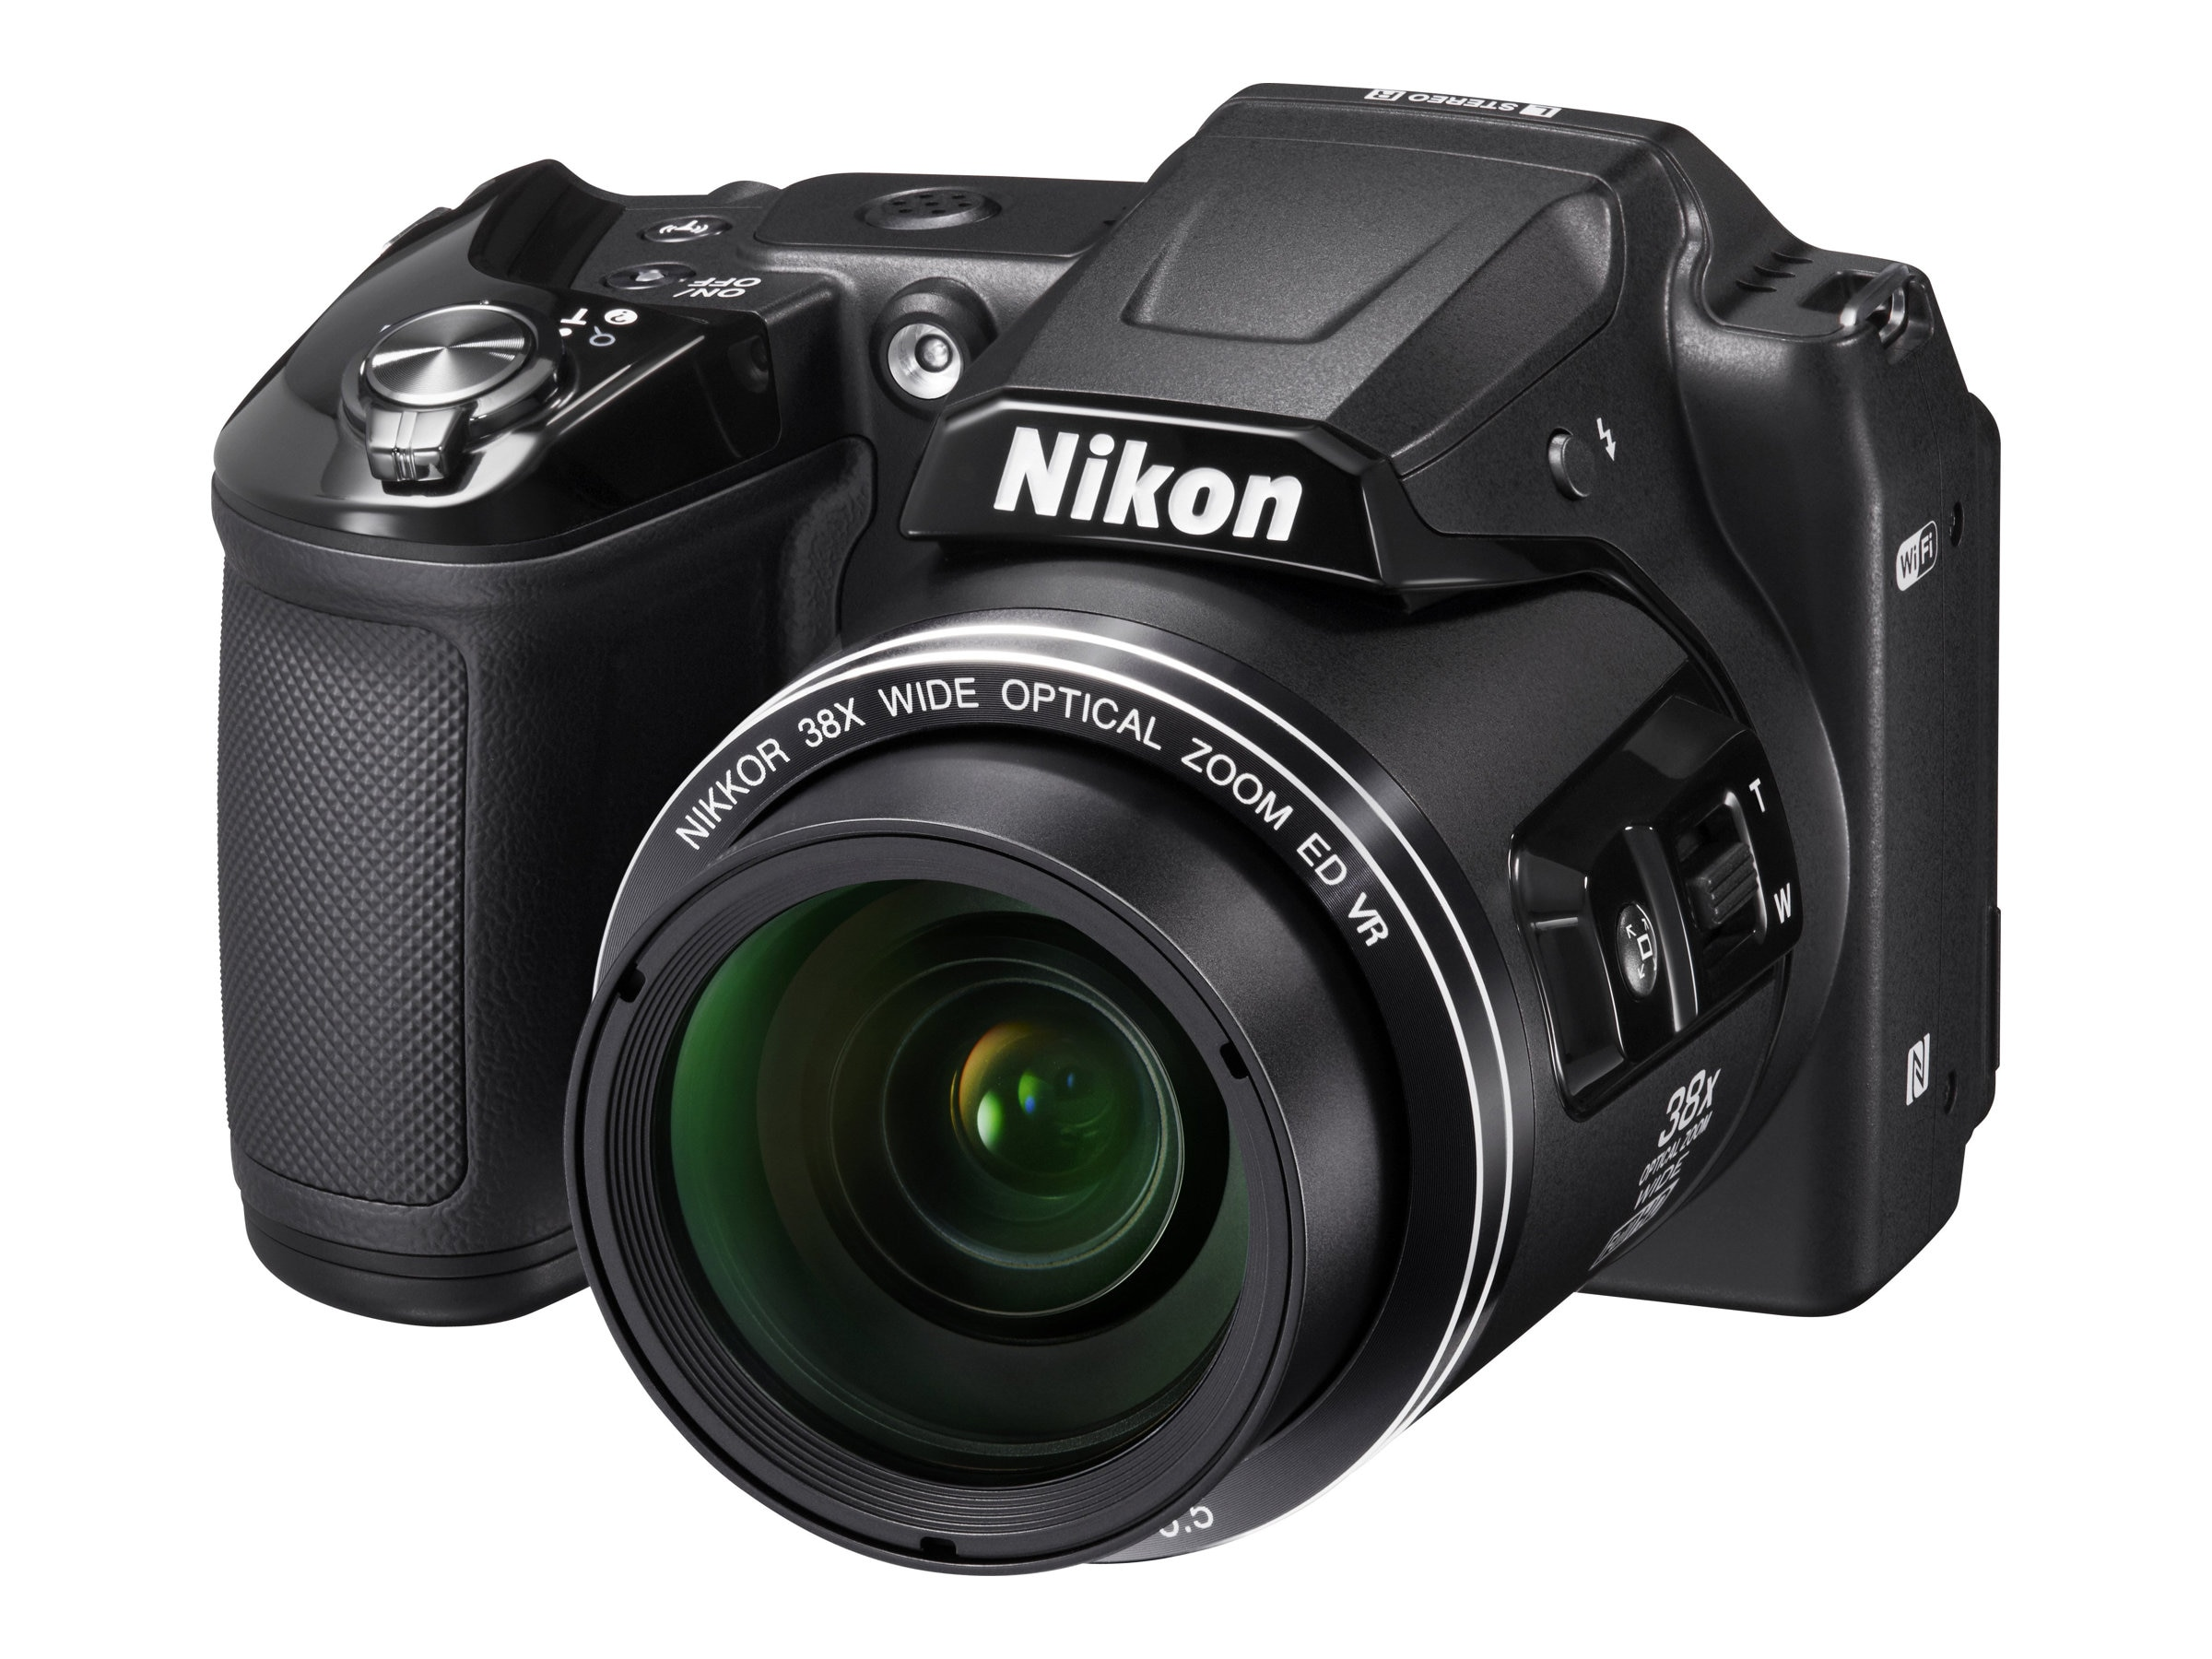 Nikon COOLPIX L840 Digital Camera, 16MP, Black, 26485, 21013450, Cameras - Digital - Point & Shoot